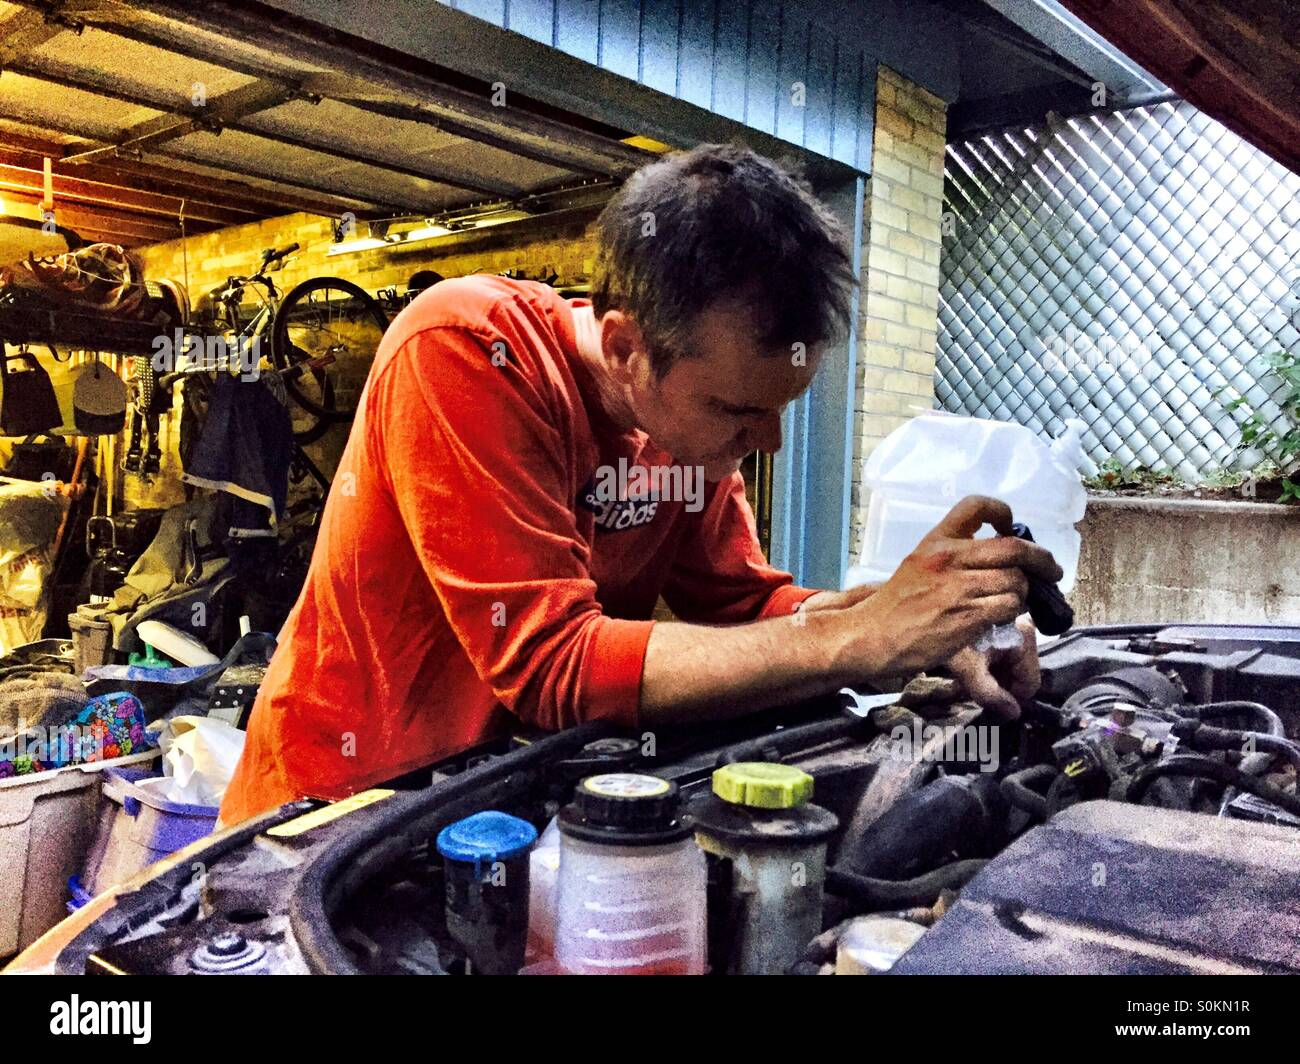 A shade tree mechanic fixes a car engine. - Stock Image